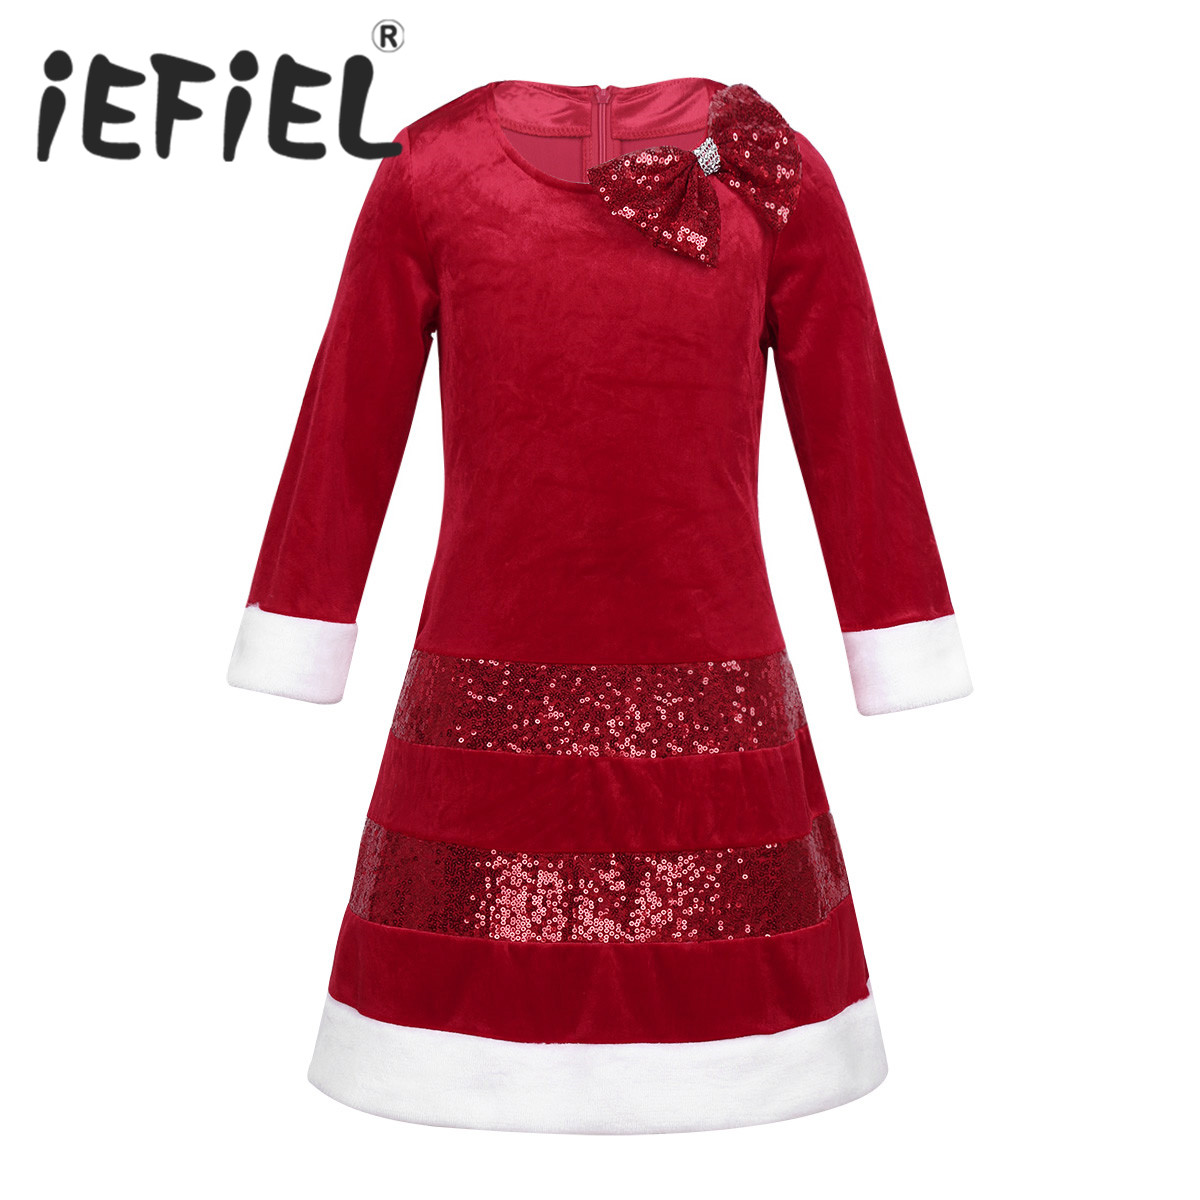 iEFiEL Children Sequins Bowknot Christmas Costume Girls New Year Xmas Princess Costume Dresses for Xmas Party Daily Wear